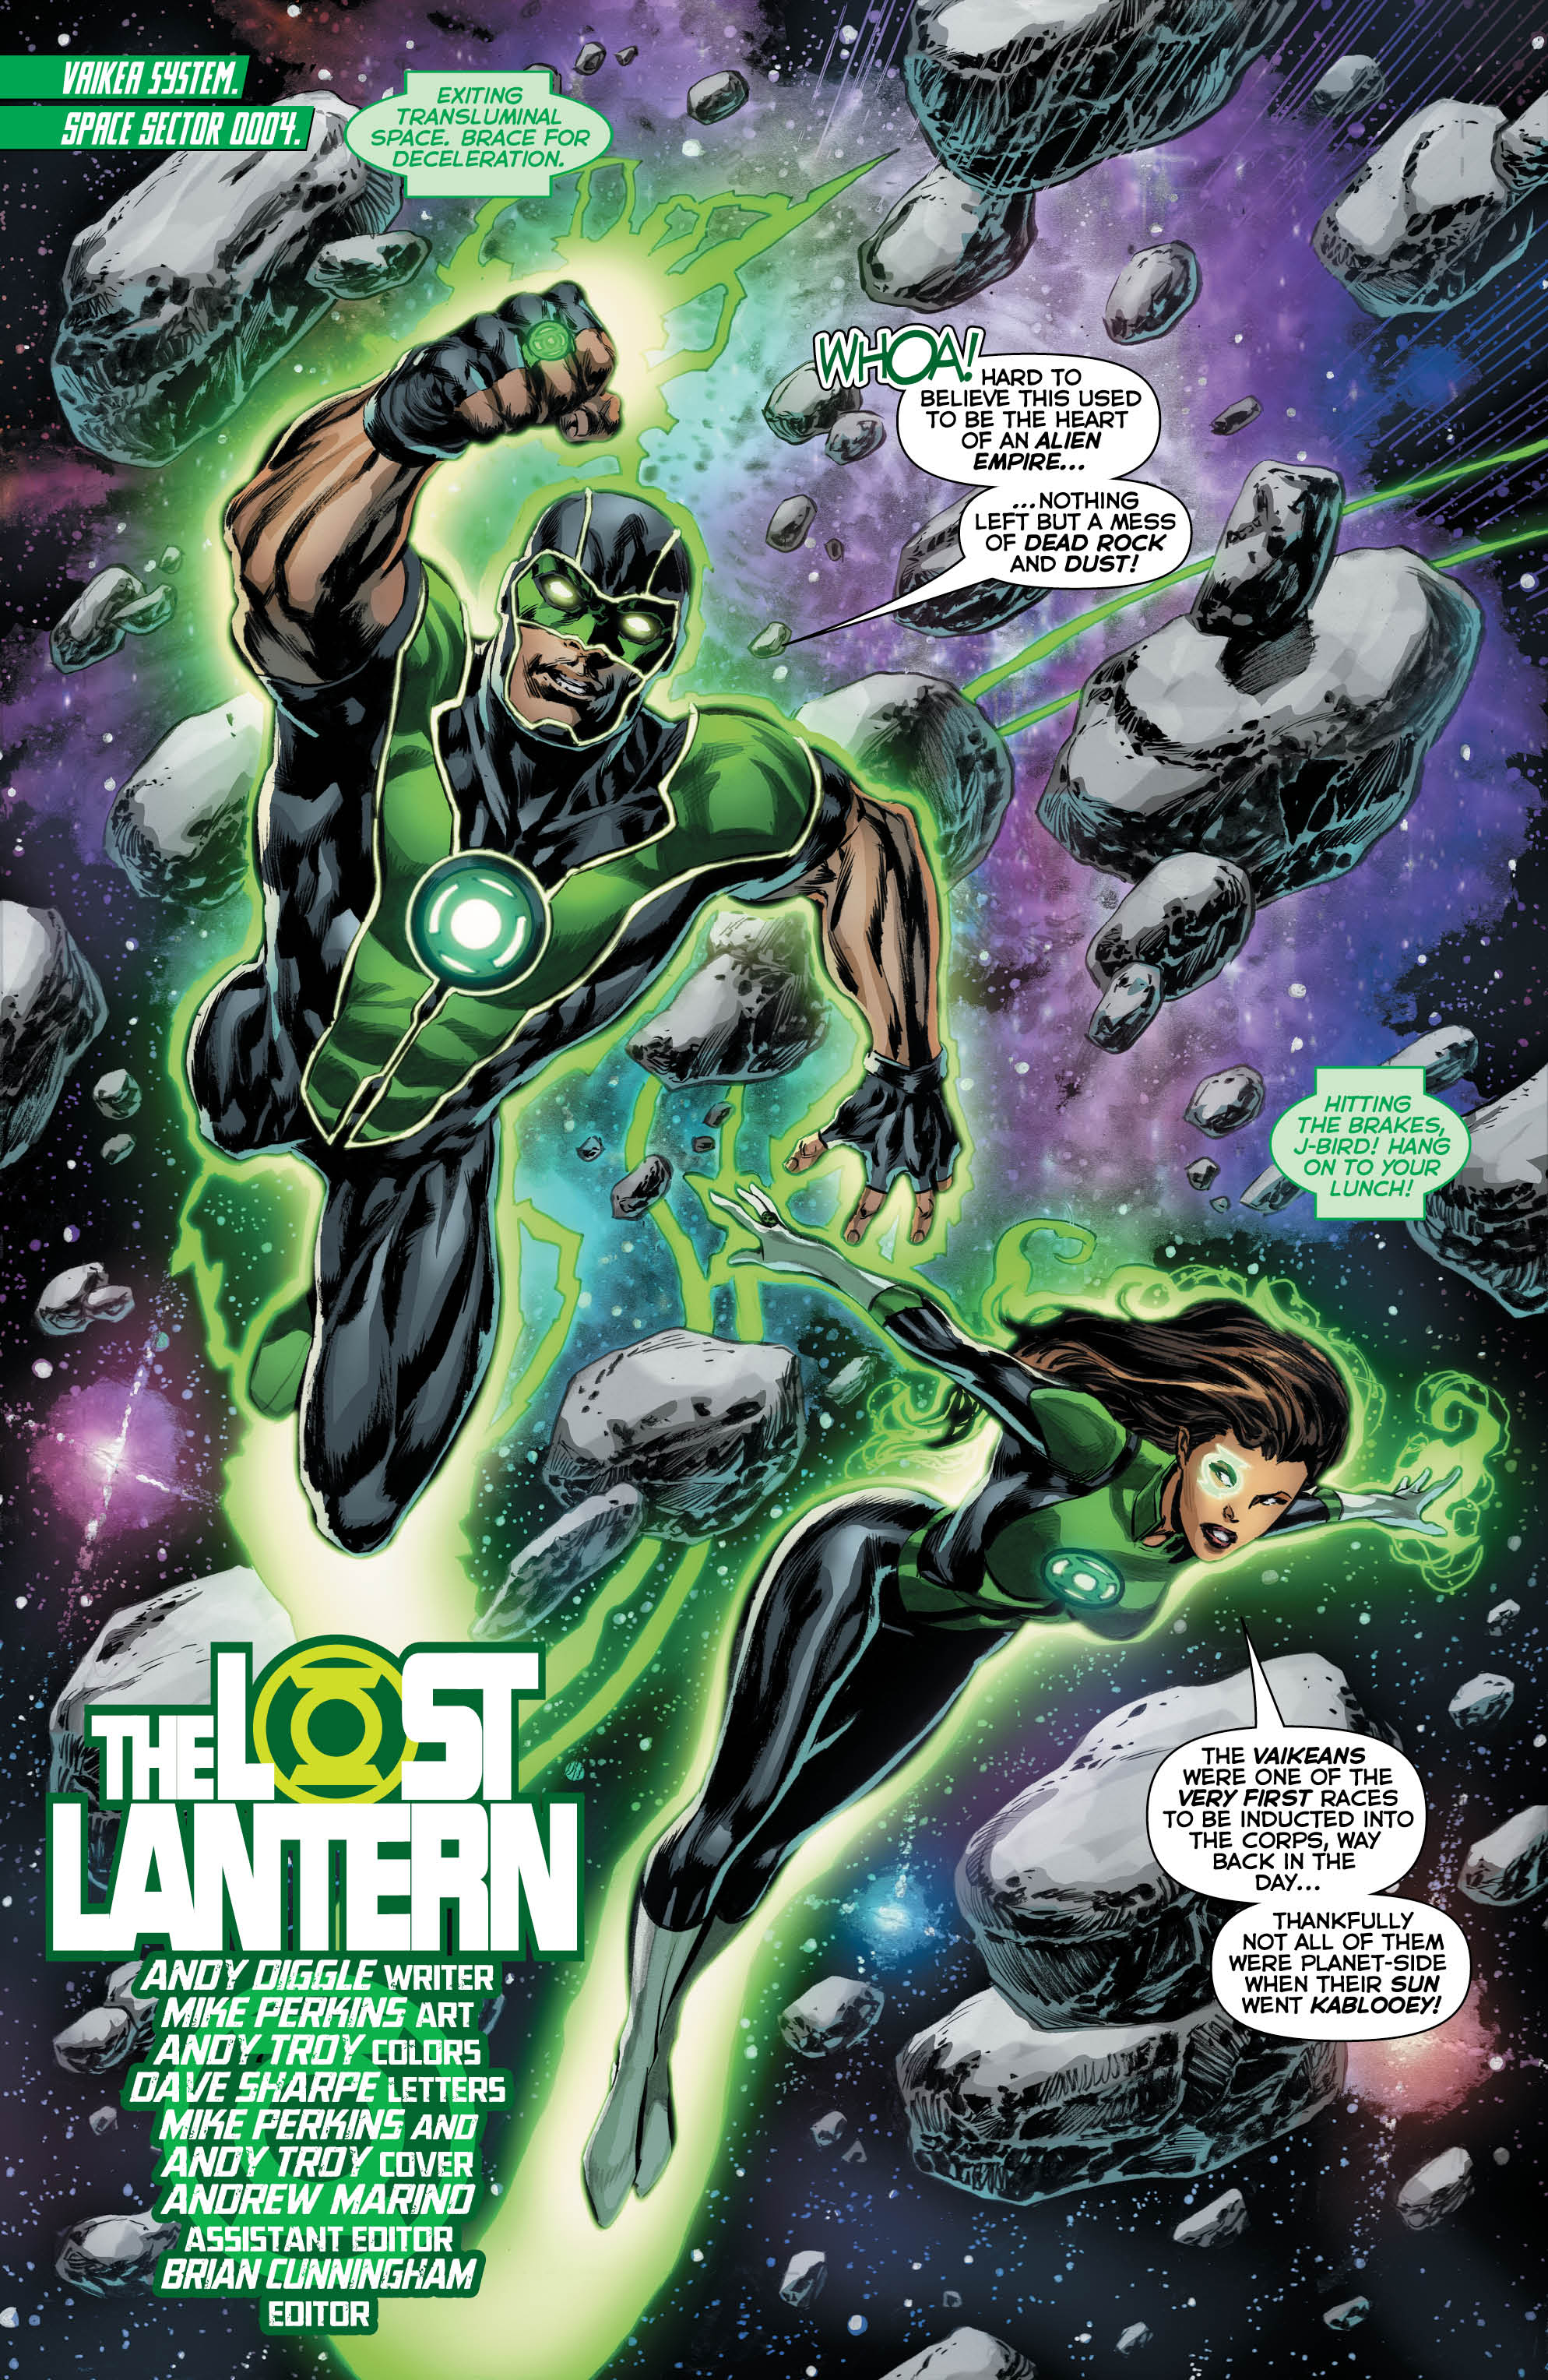 Green Lanterns Annual #1 review: An entertaining but flawed one-shot